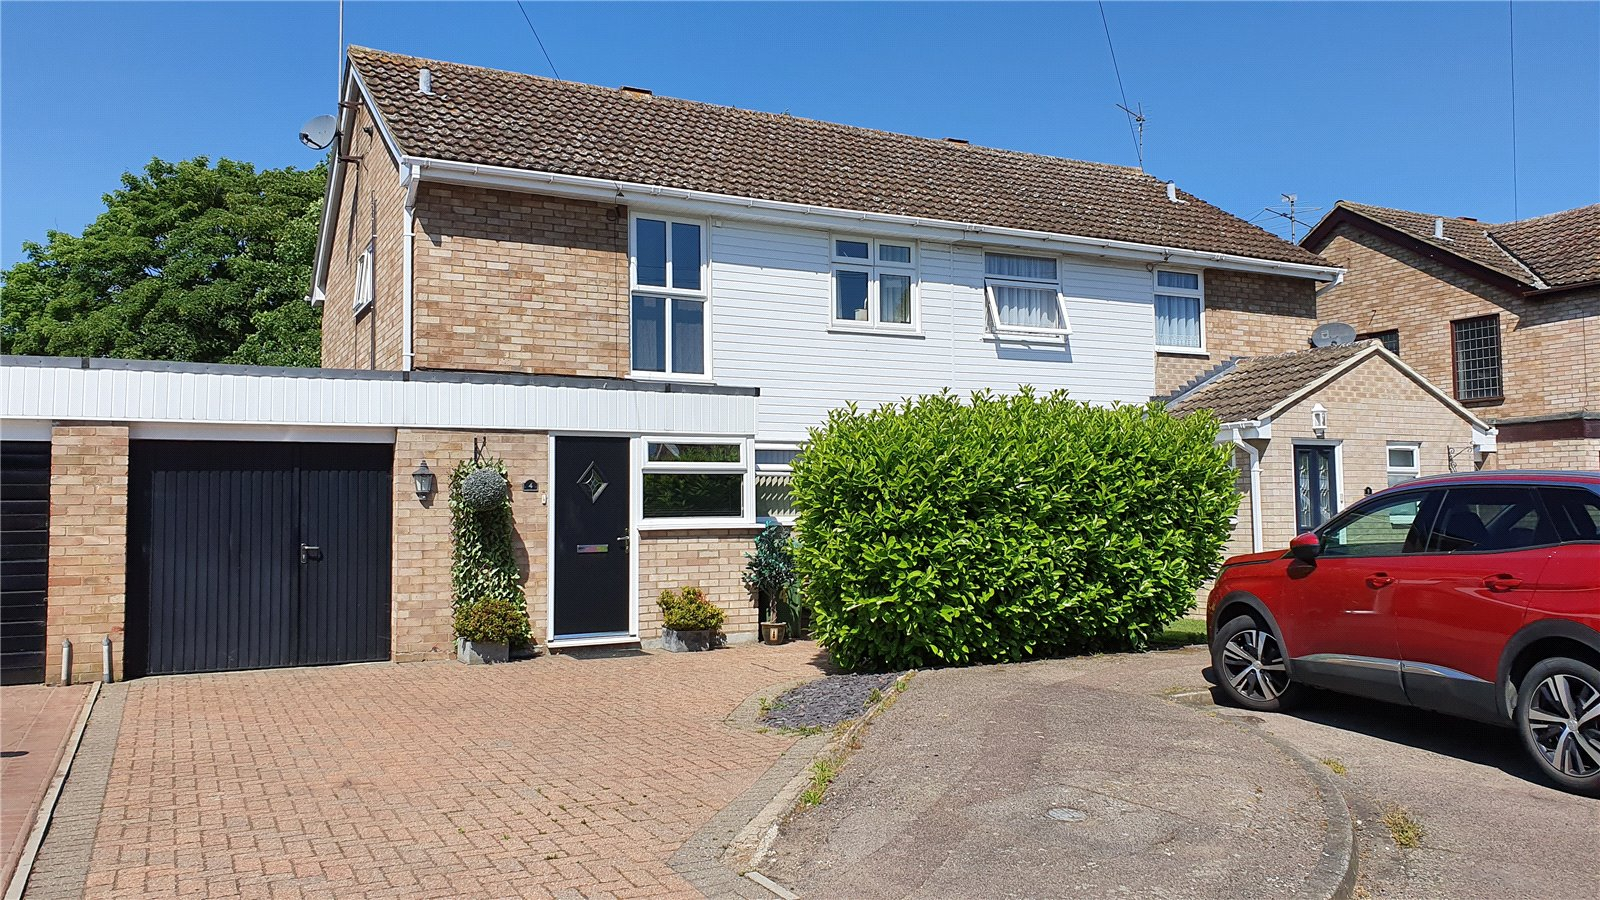 3 bed house for sale in Eaton Socon, PE19 8HQ  - Property Image 1